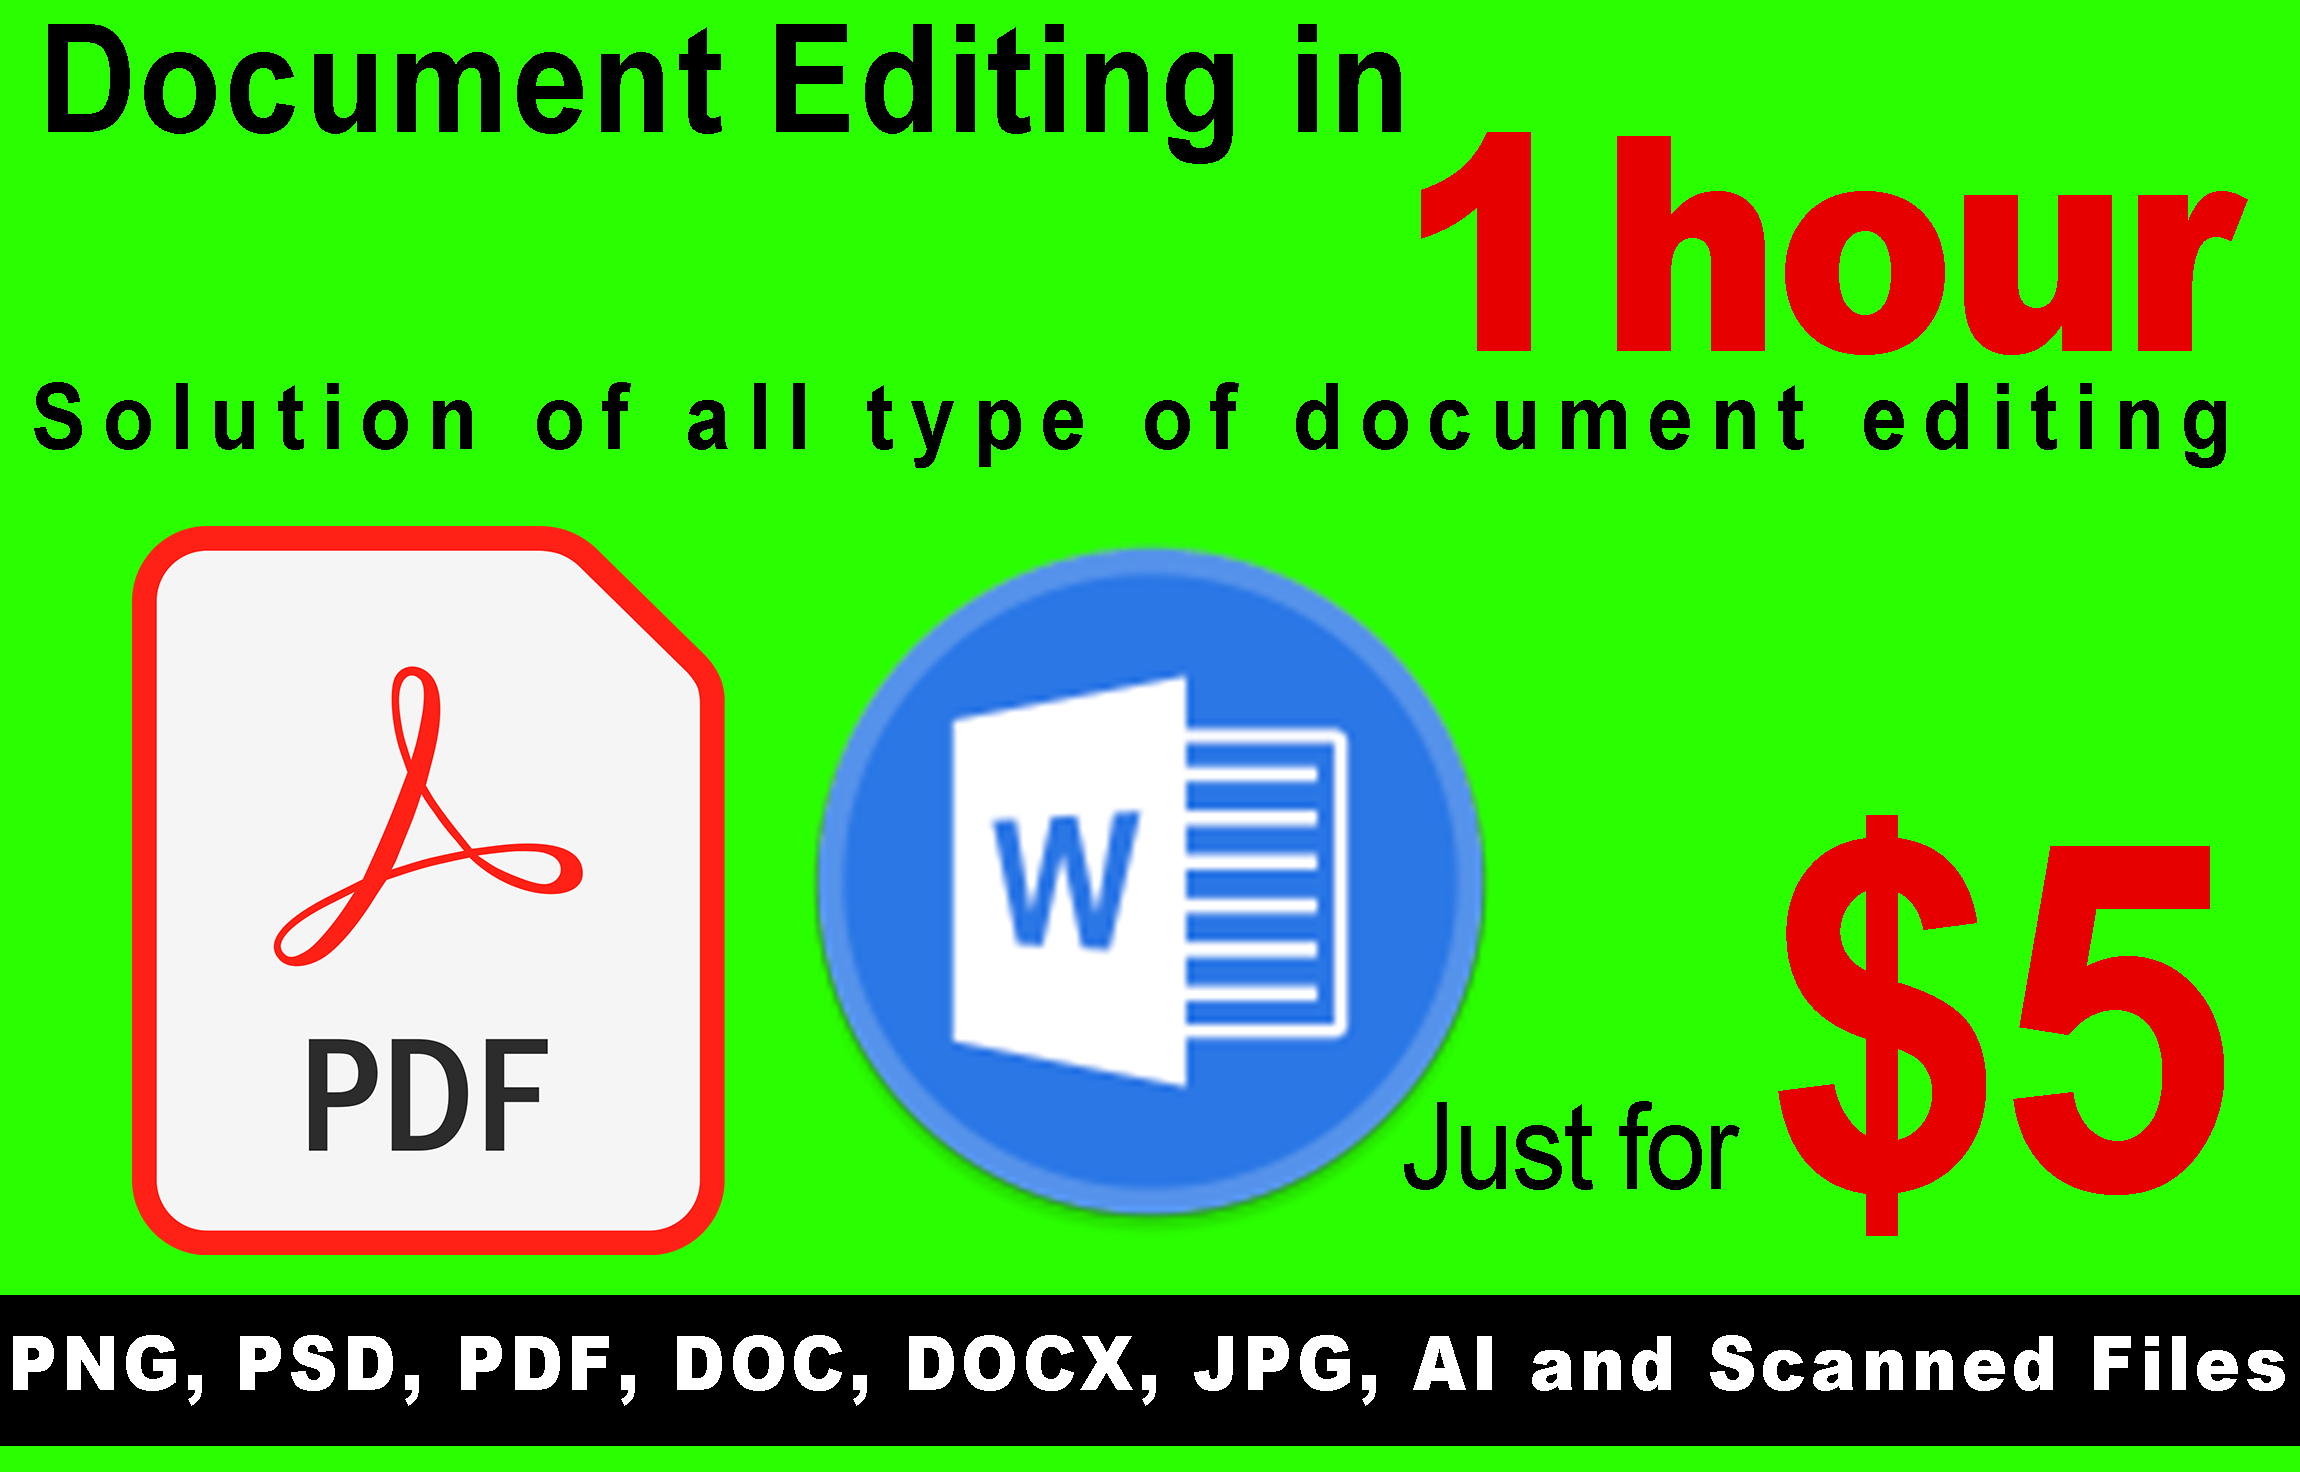 I will do any type of Photoshop editing of images and documents